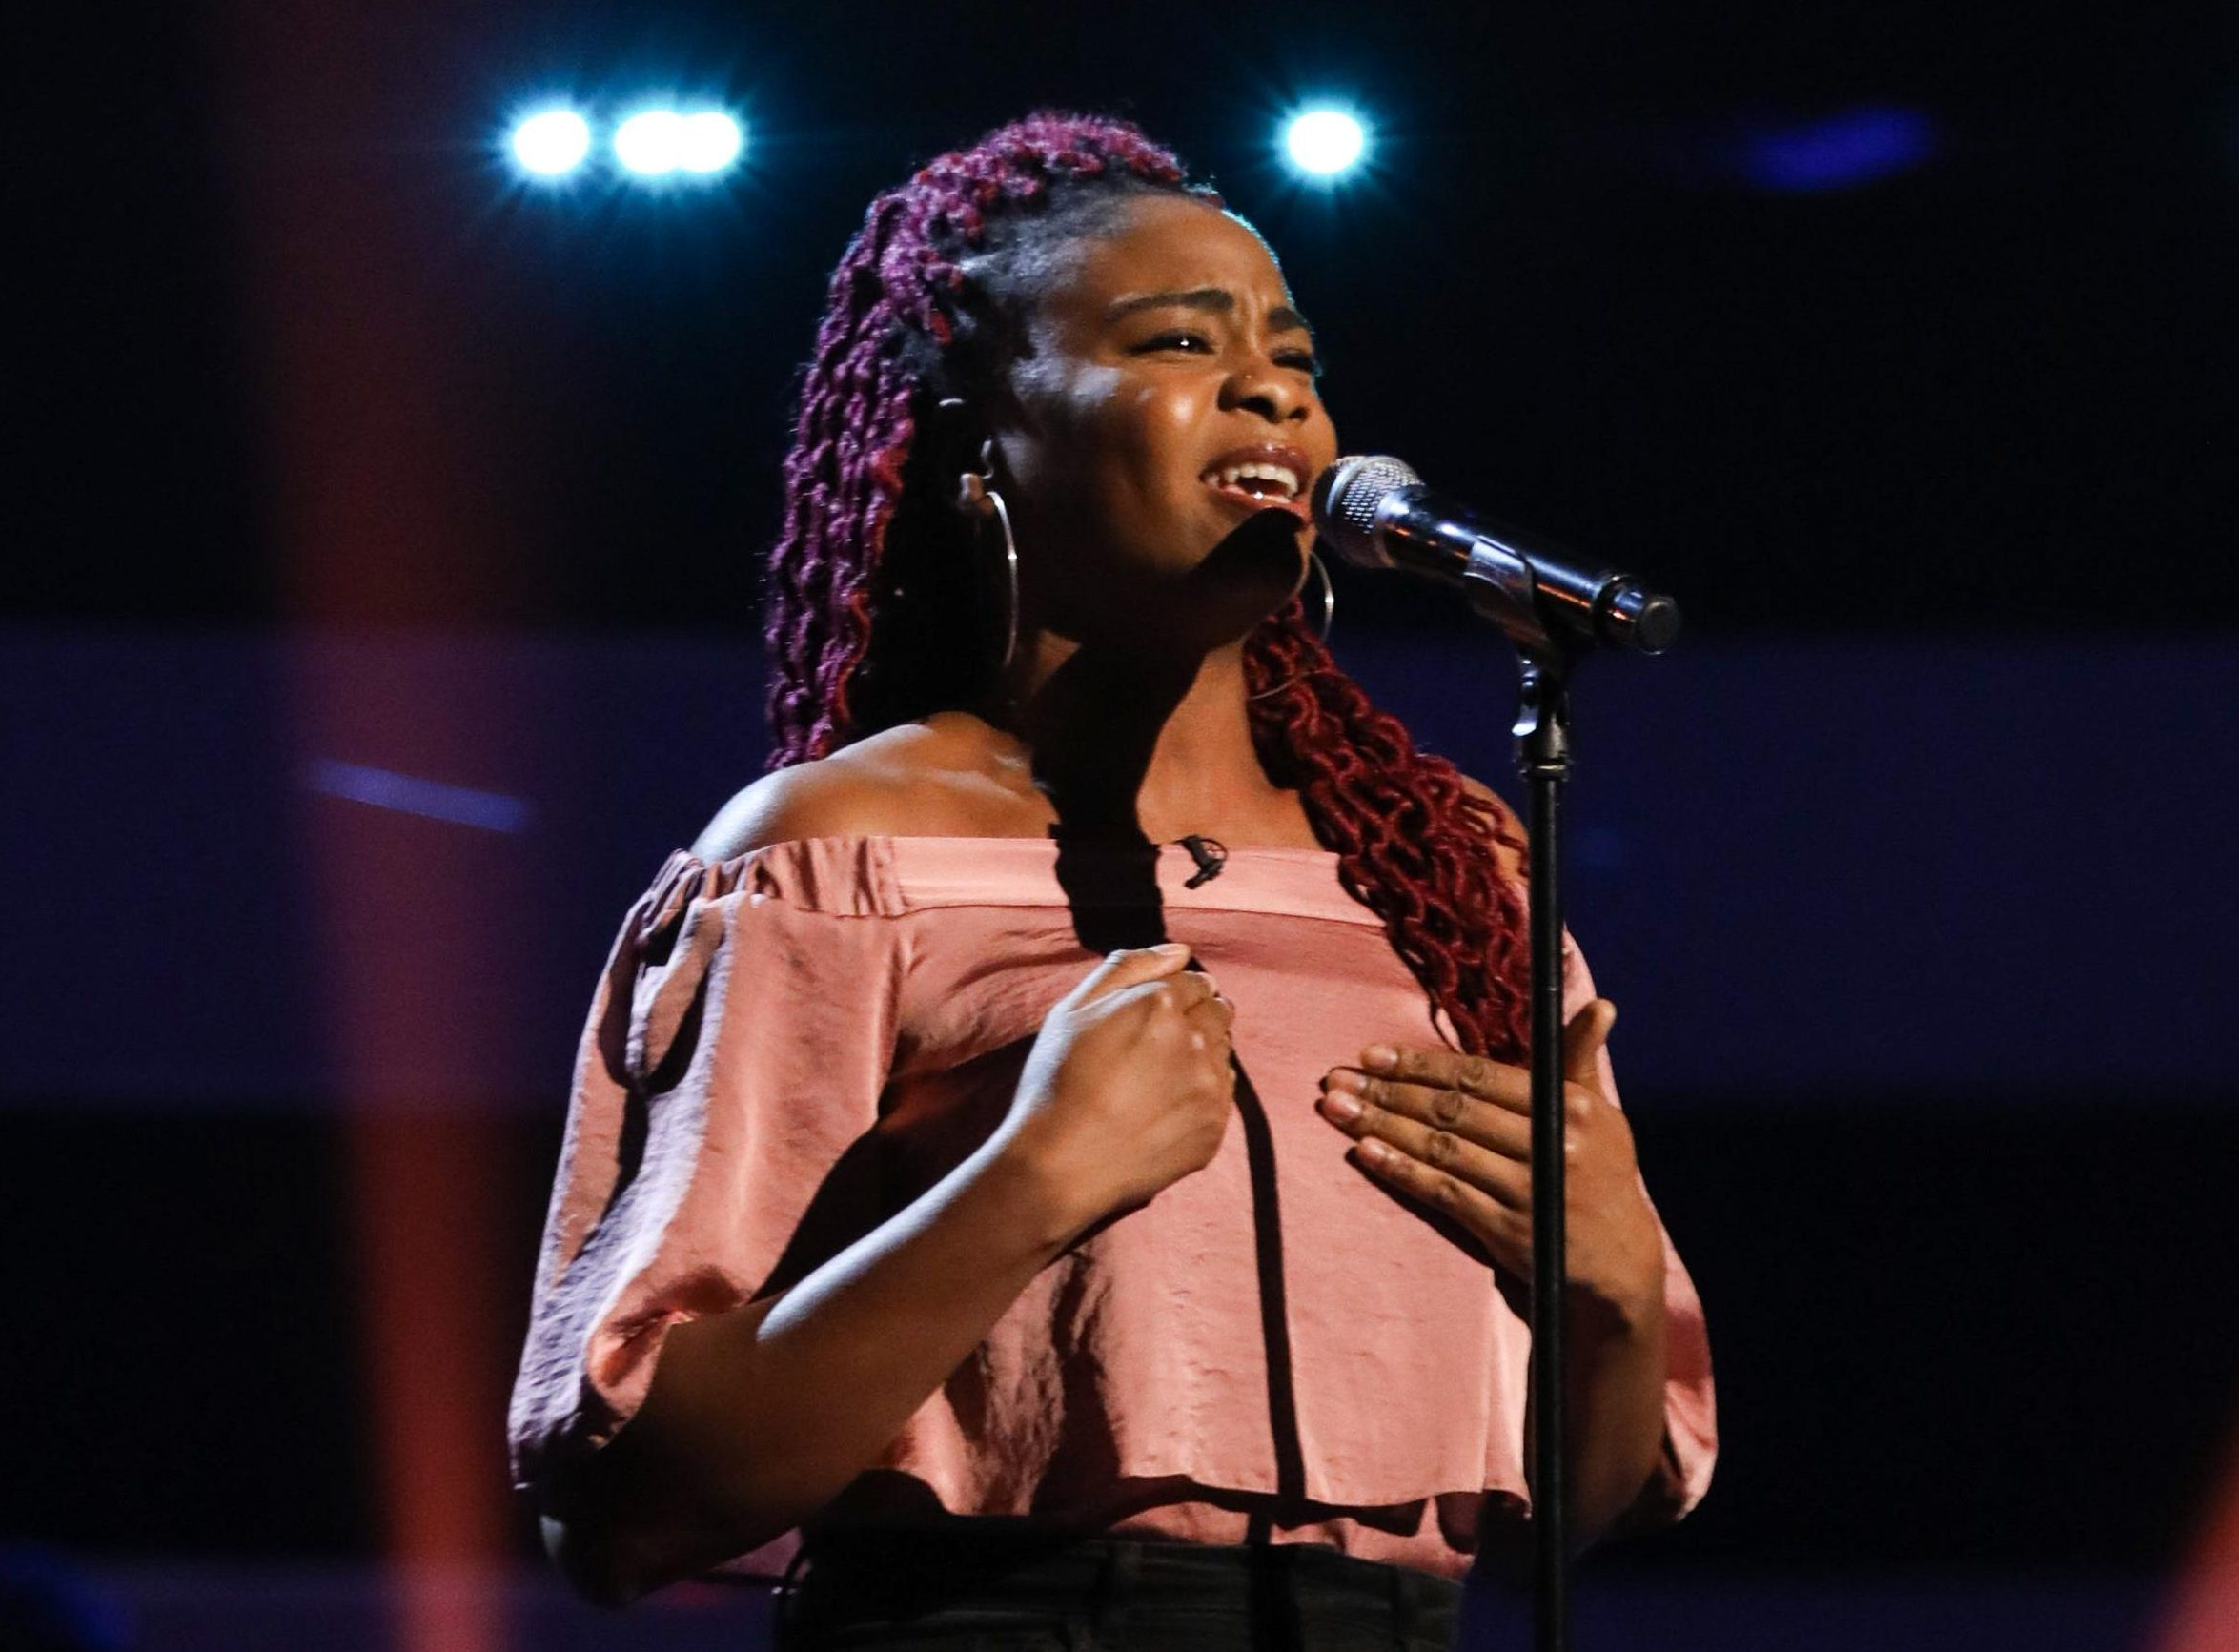 Who is Gisela Green? The Voice 2019 contestant and singer from London